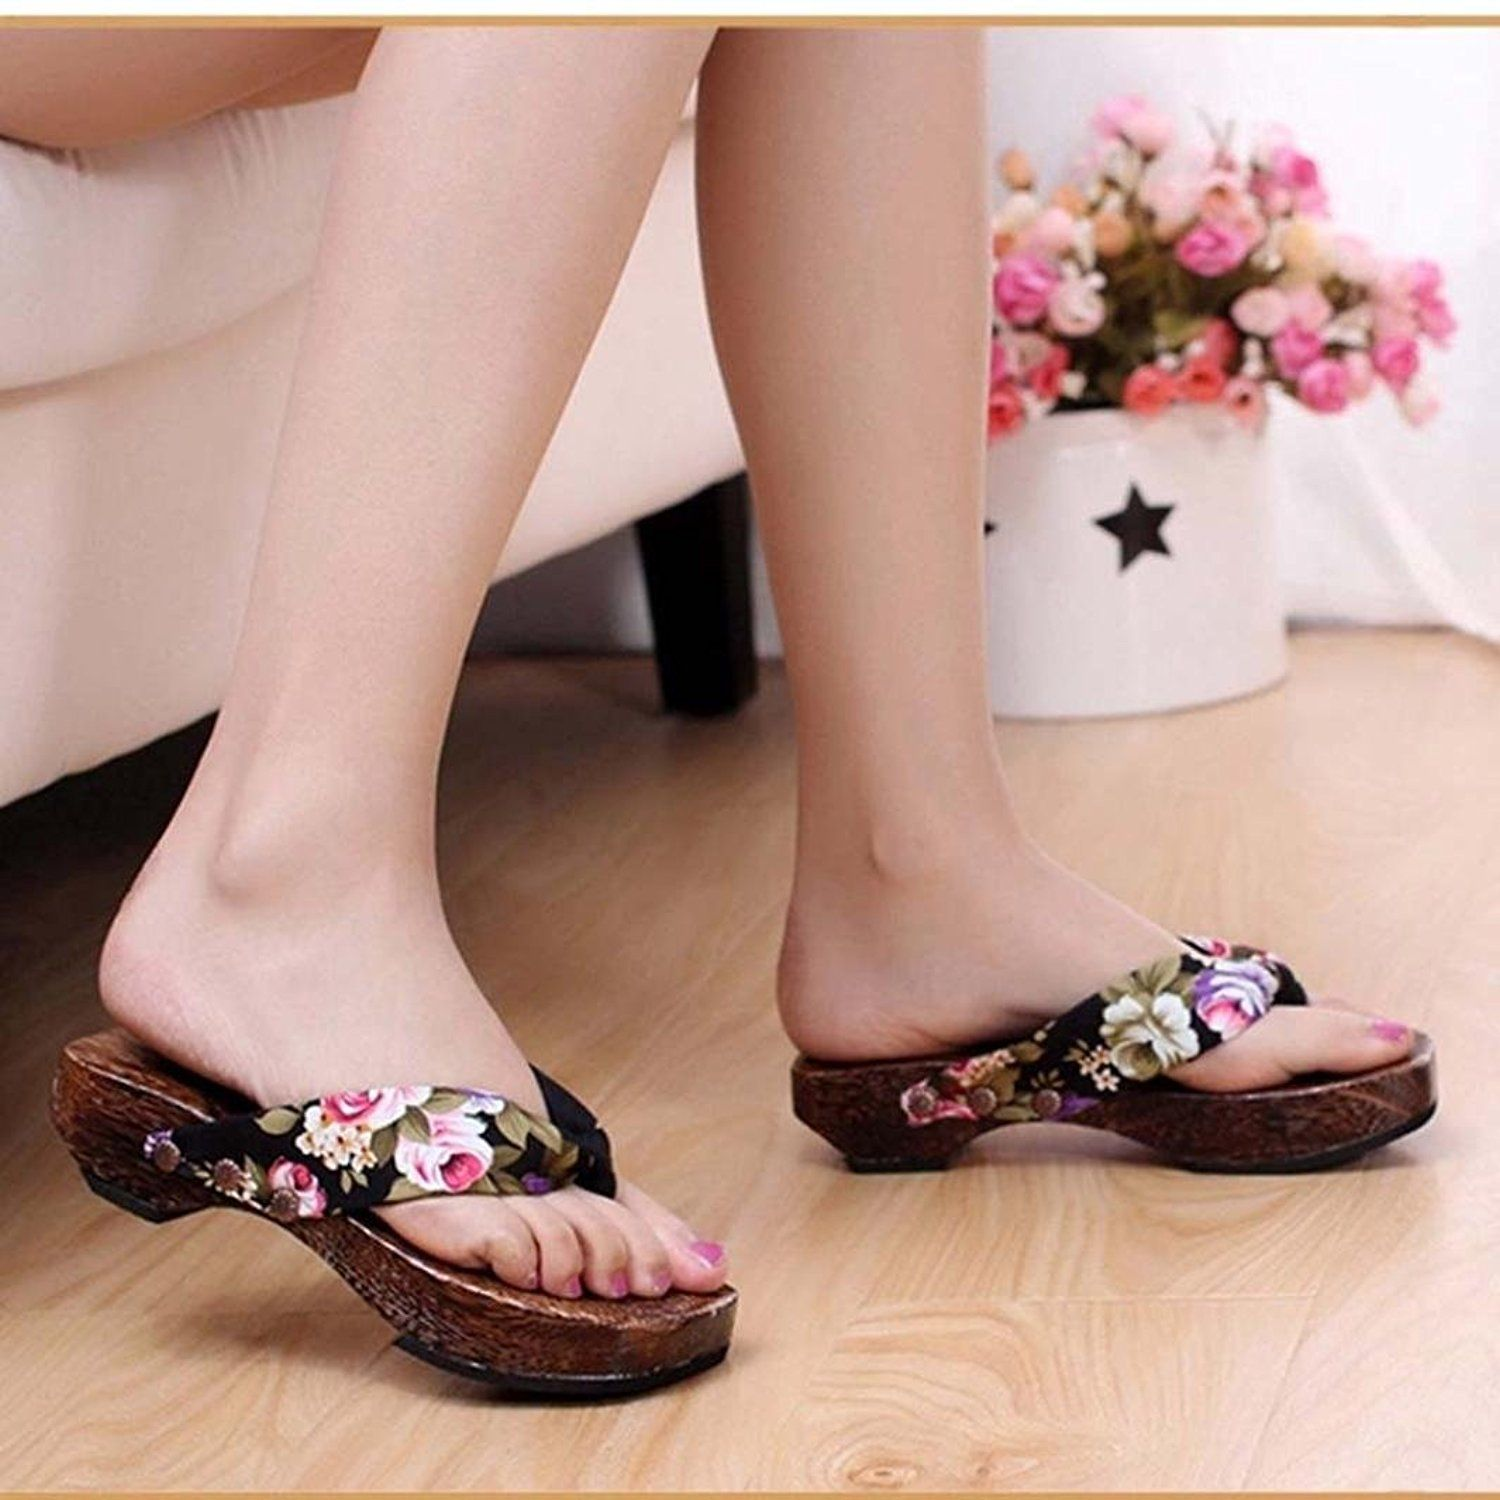 5aad6edae249a Sikye Summer Sexy Flip Flops Women Bohemian High Platform Summer Wedge  Thong Slippers Women -- You can get additional details at the image link.